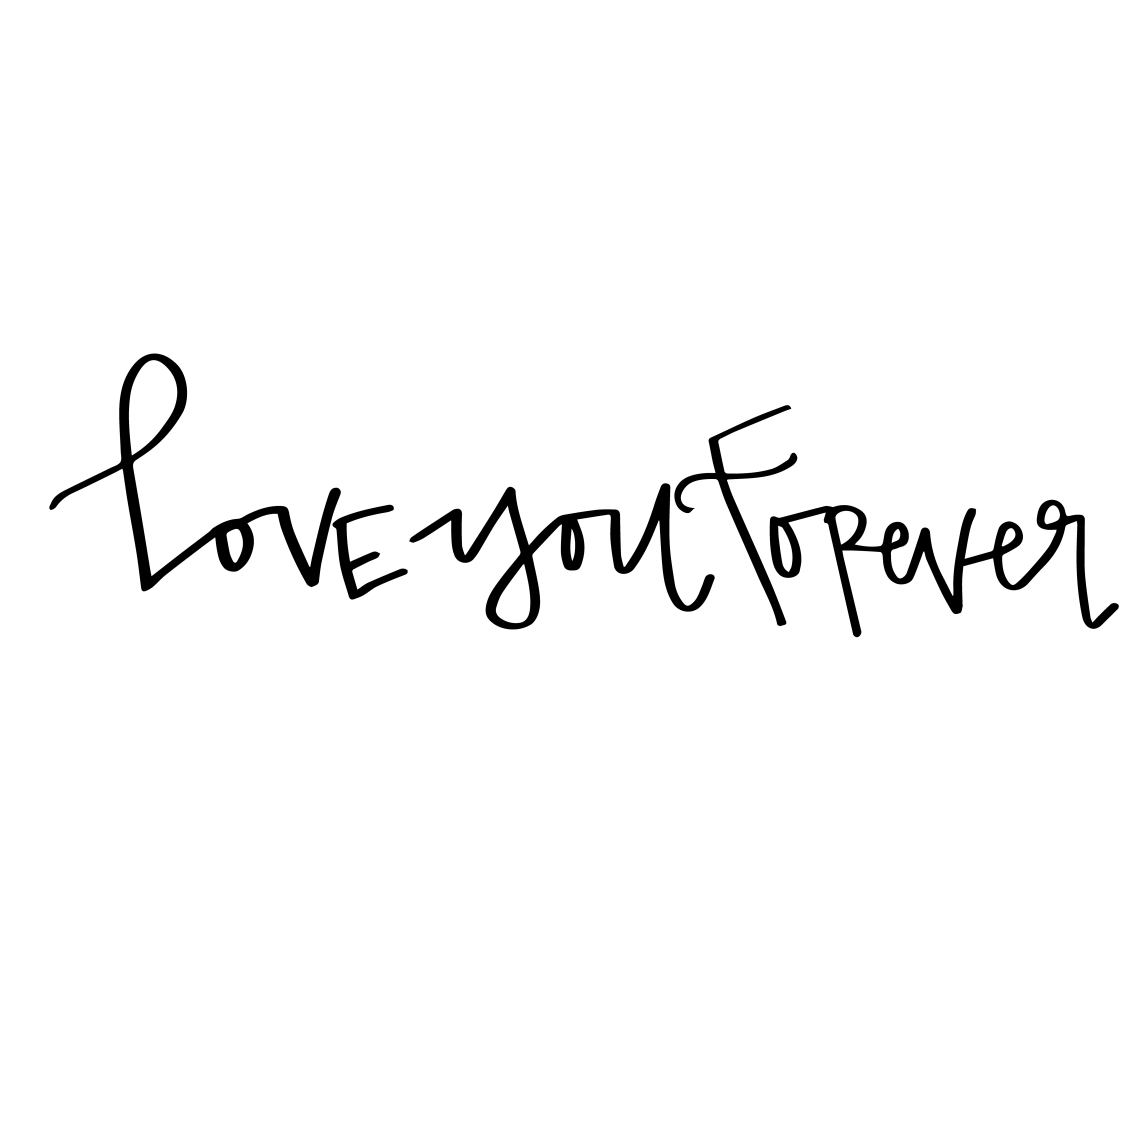 Download Hand Lettered Love You Forever Free SVG Cut File